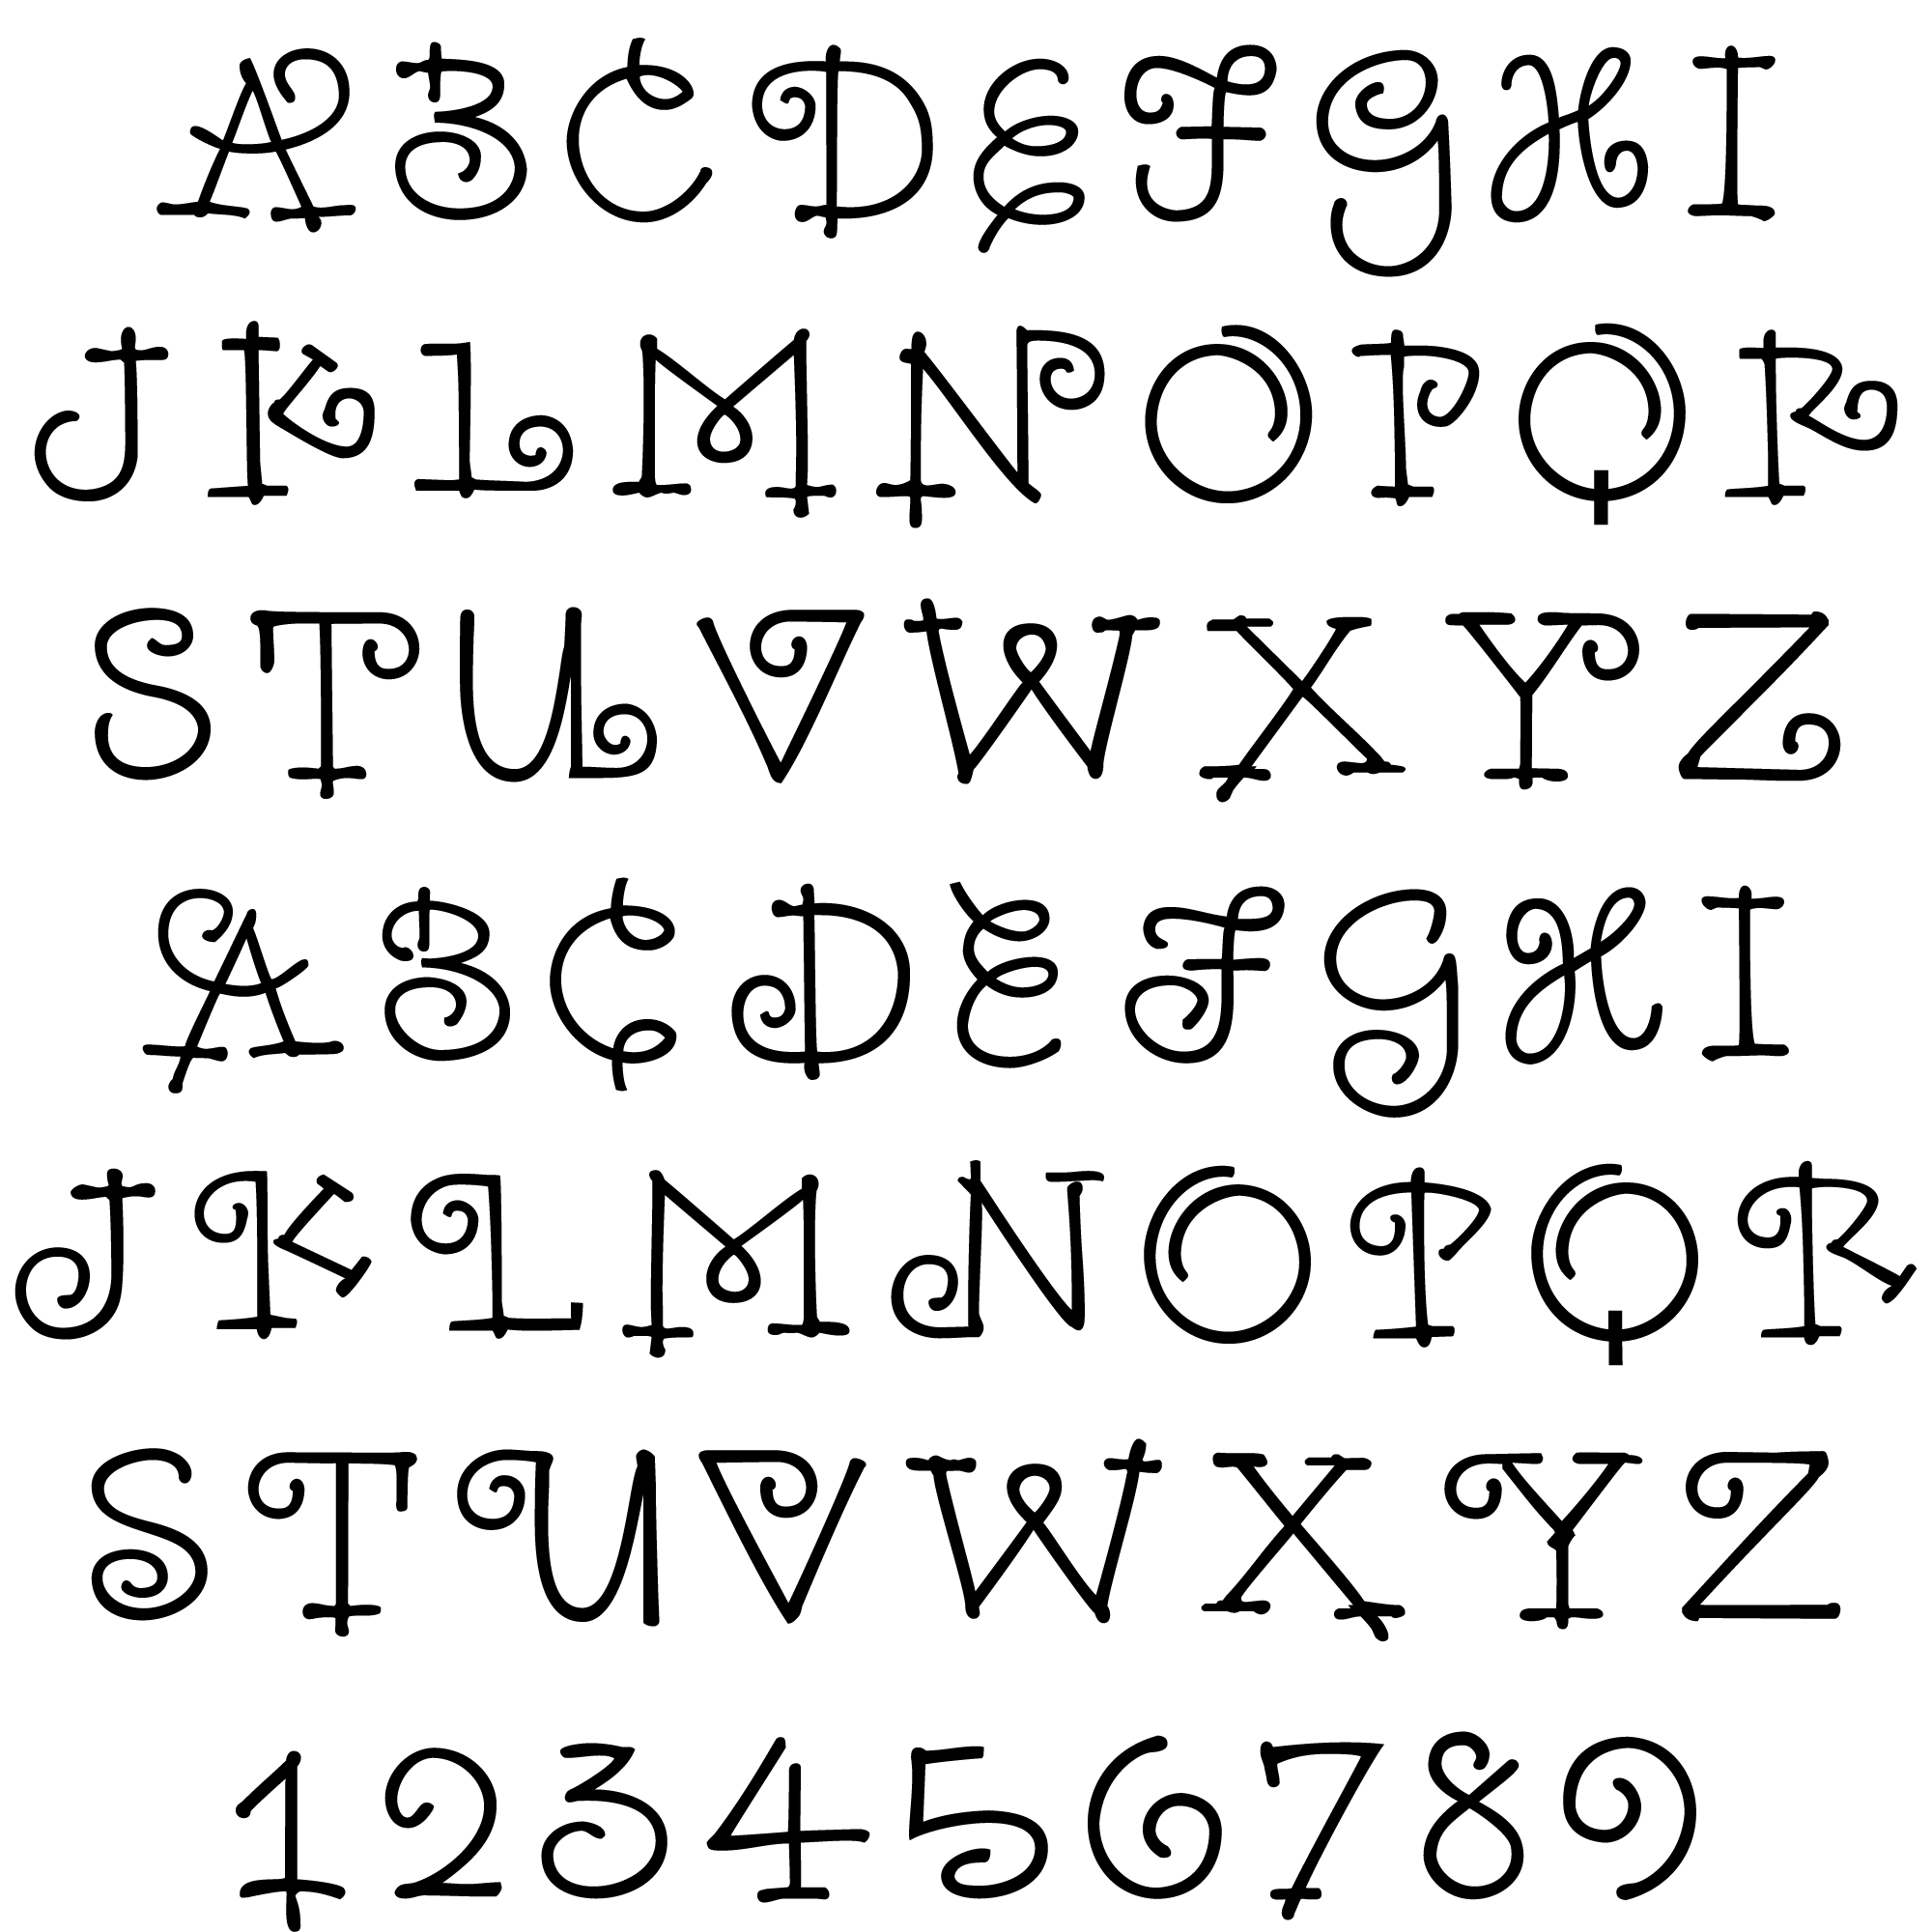 New Font From Outside The Line Raes Monogram Family Includes 2 Alphabet Fonts And 50 Illustrations